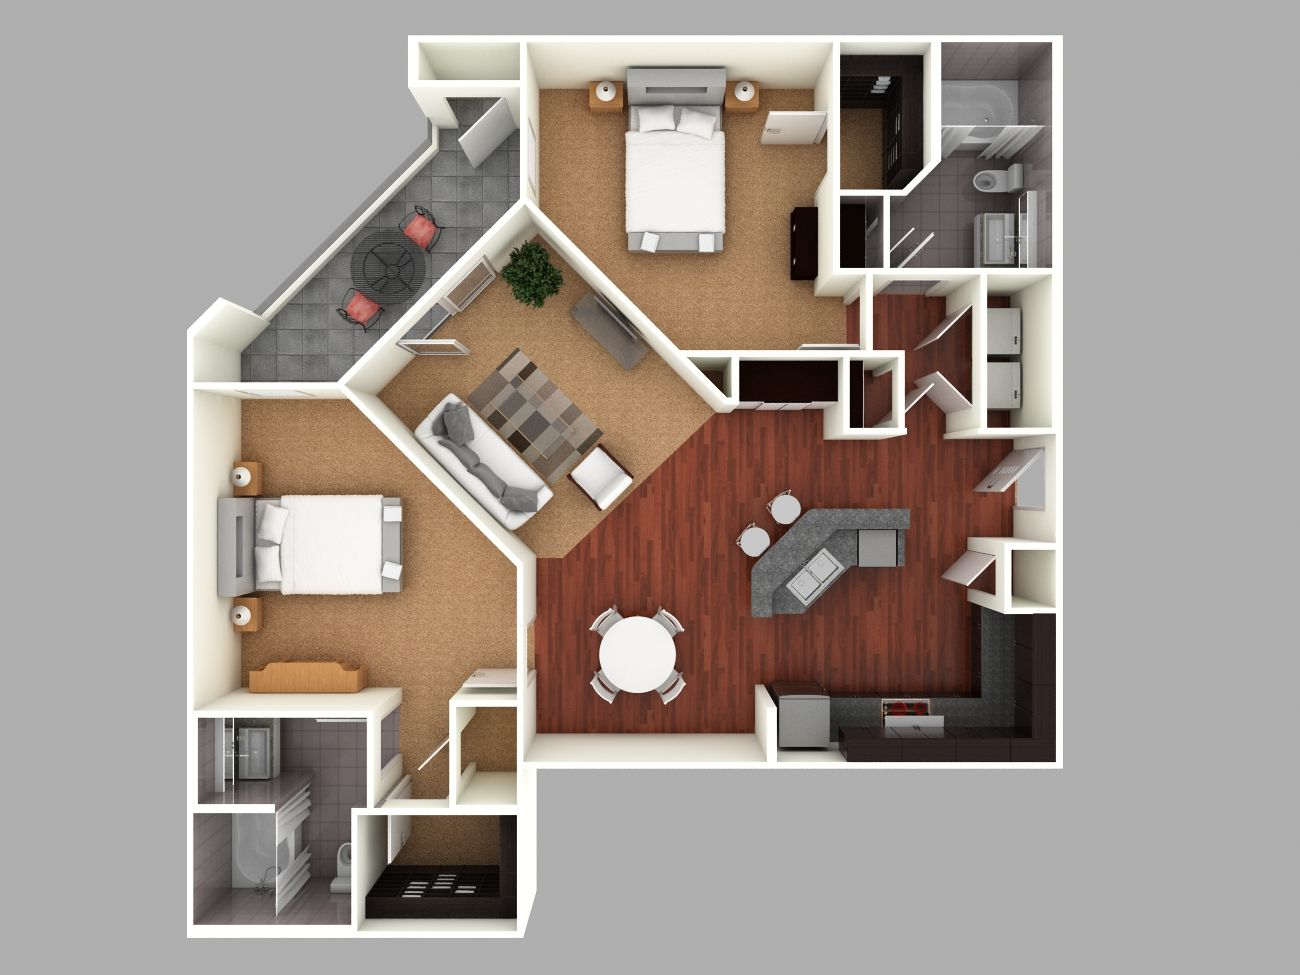 Colored House Floor Plans 3d colored floor plan | architecture: colored floor plan